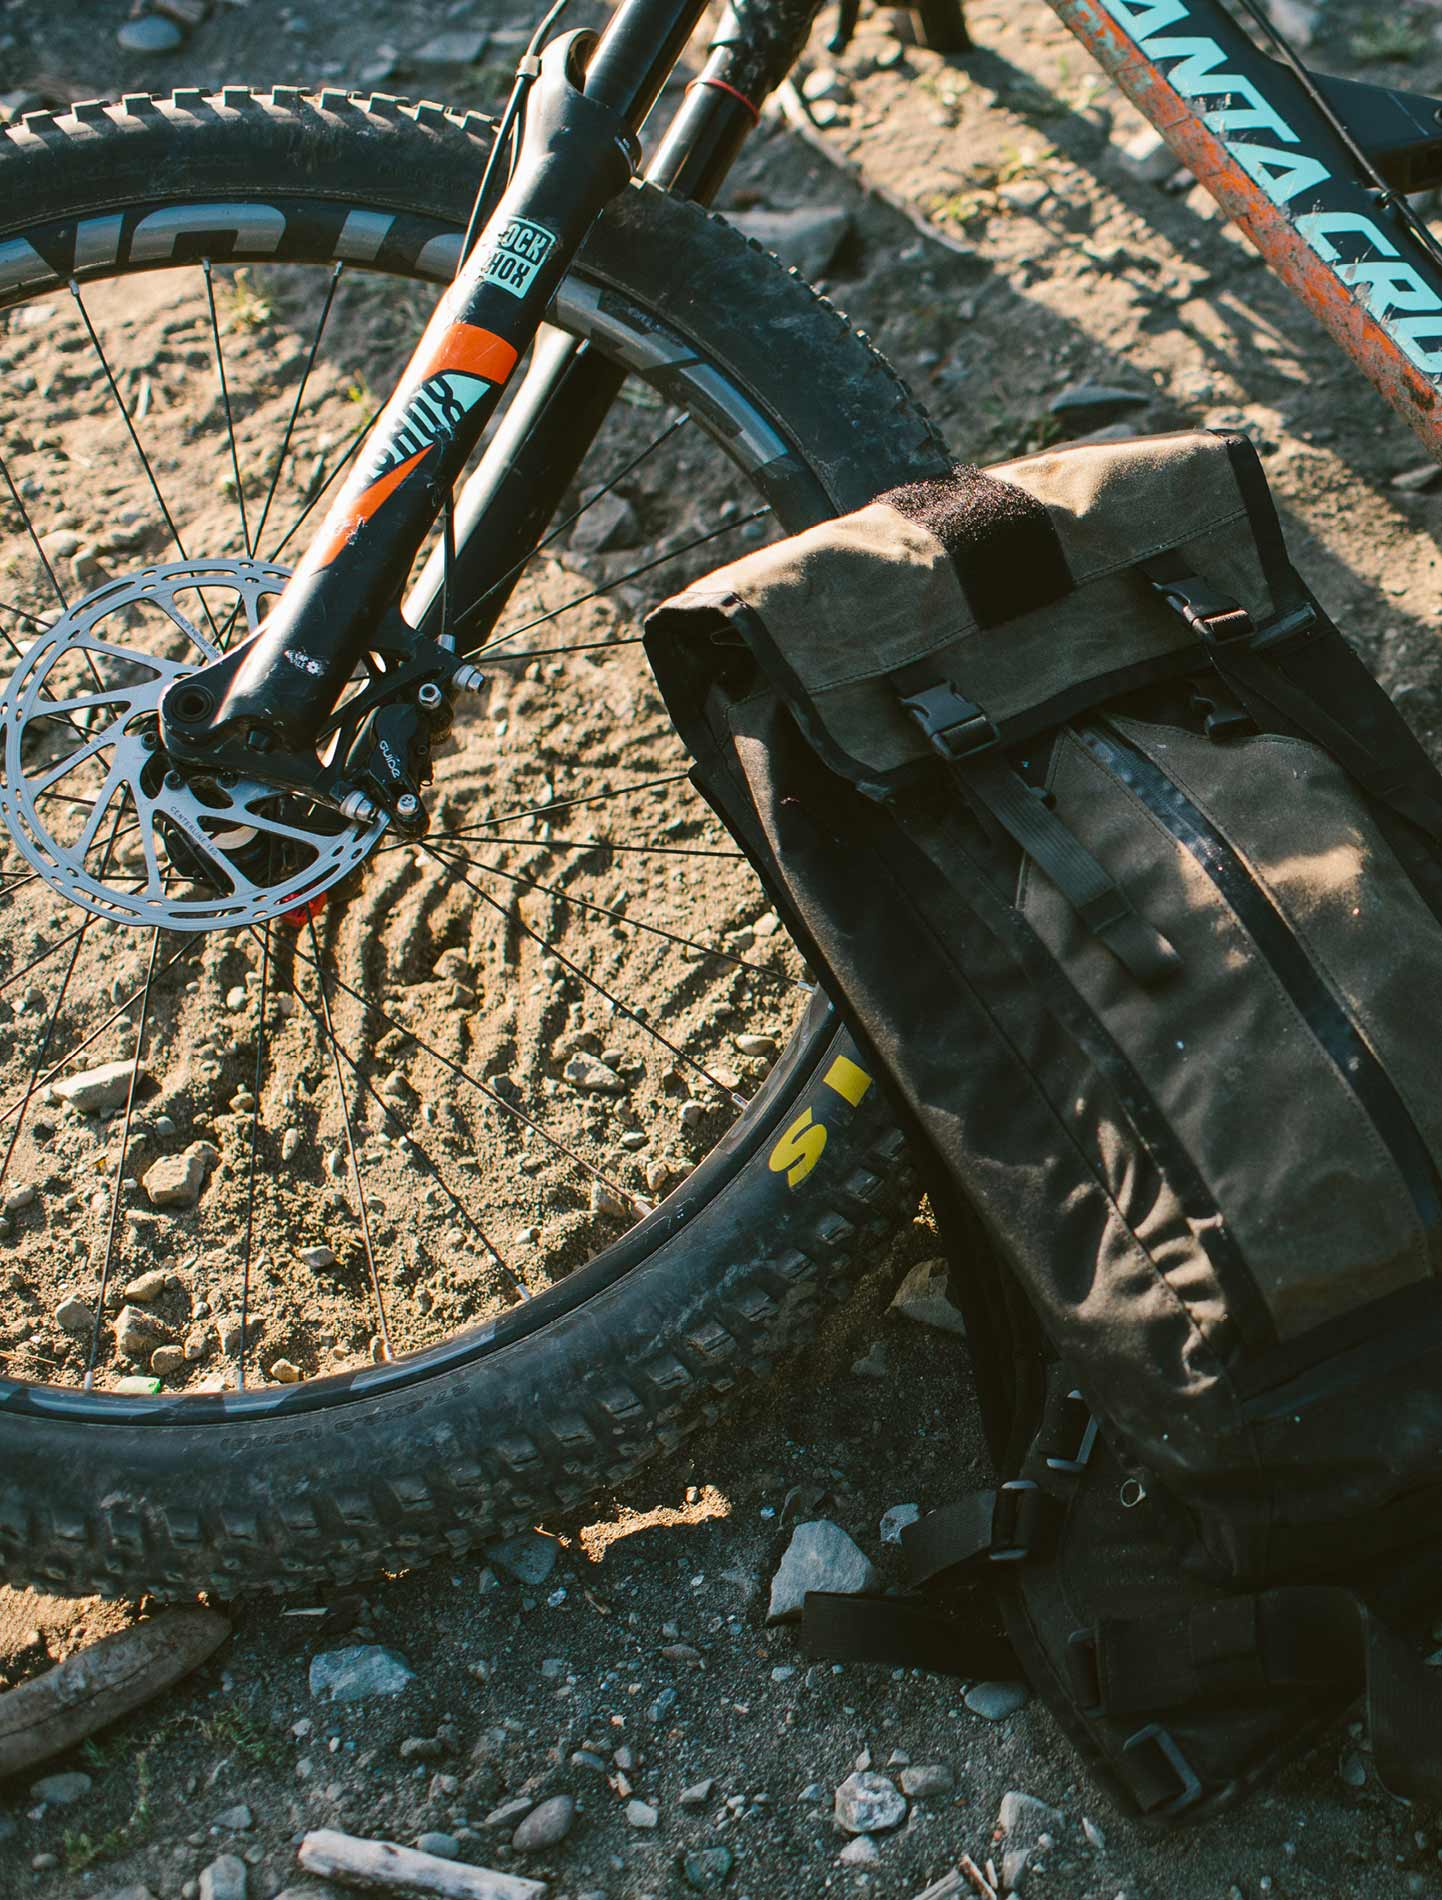 A North Coast Collection bag and a mountain bike.